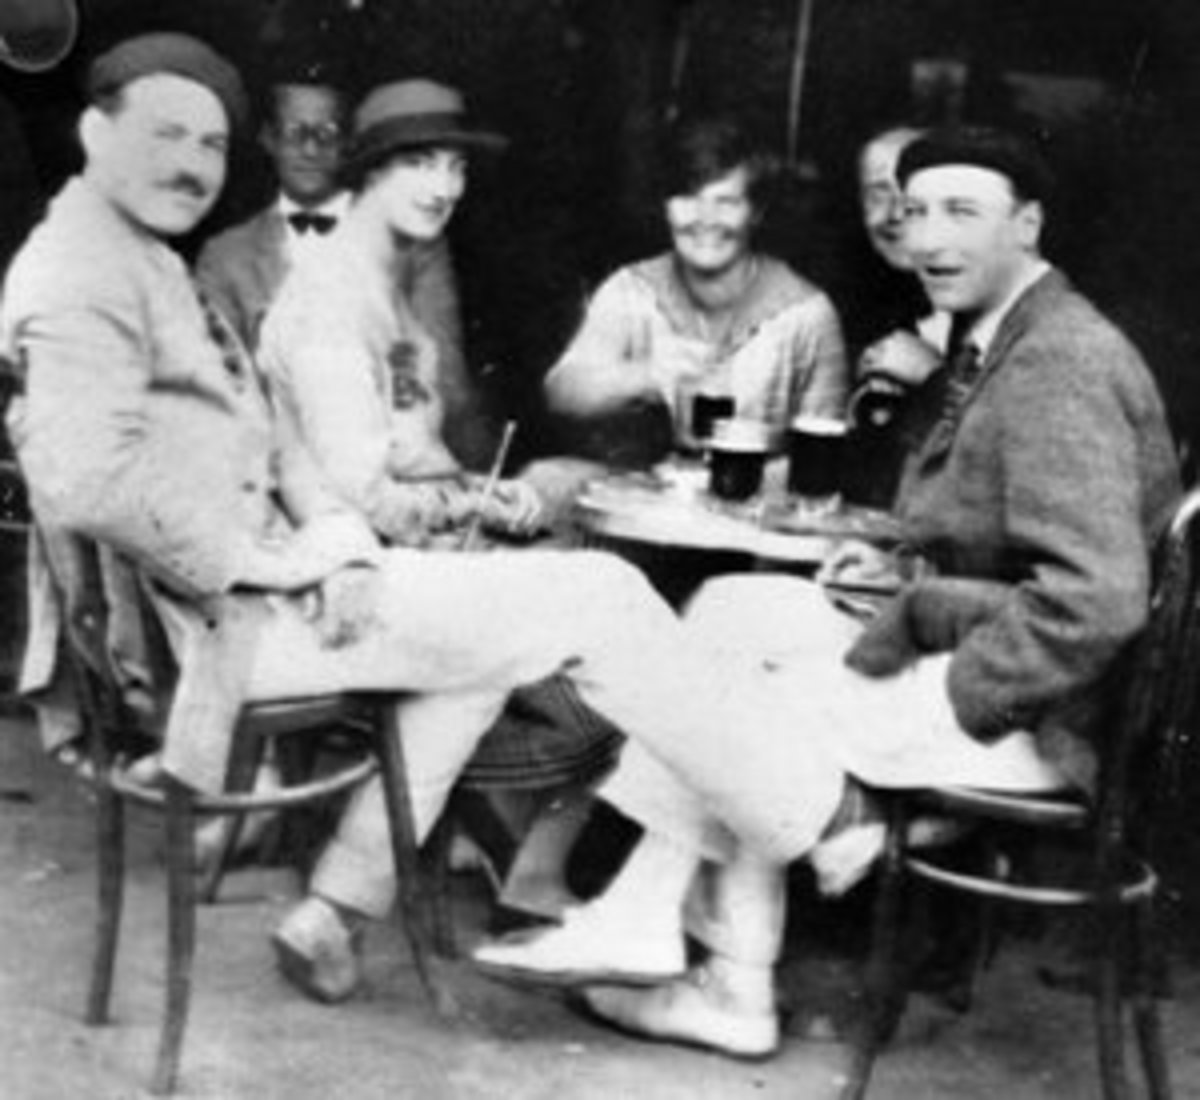 Hemingway and others in Spain 1925